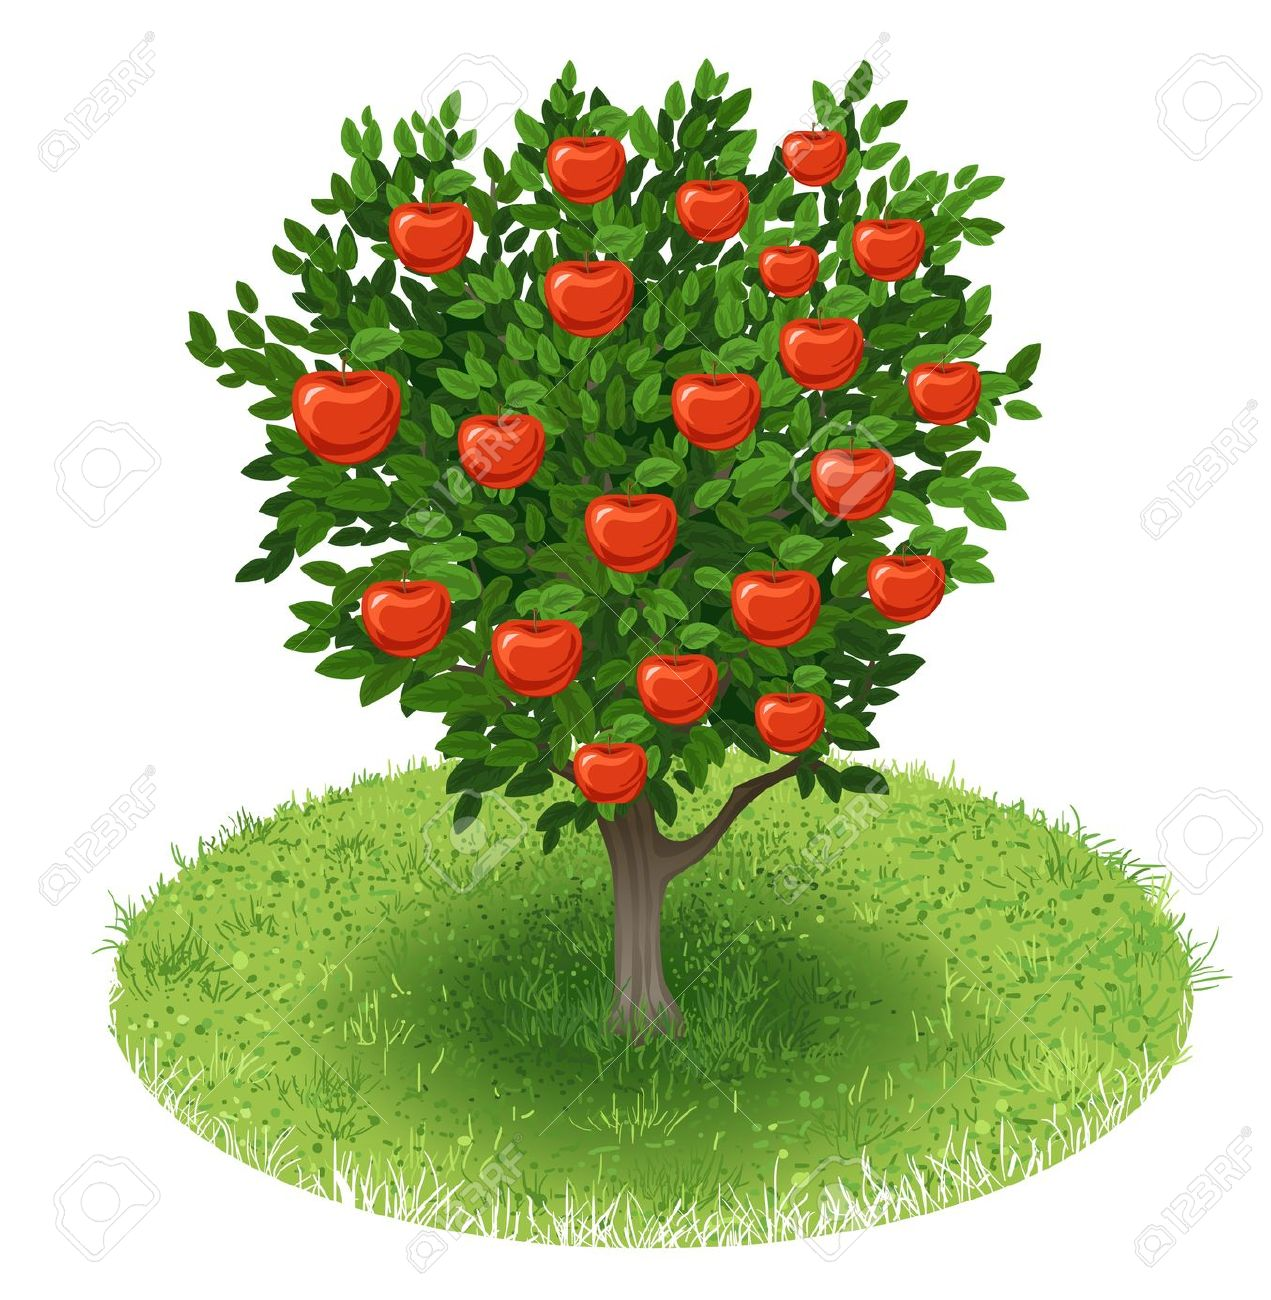 Apple tree in a field clipart.